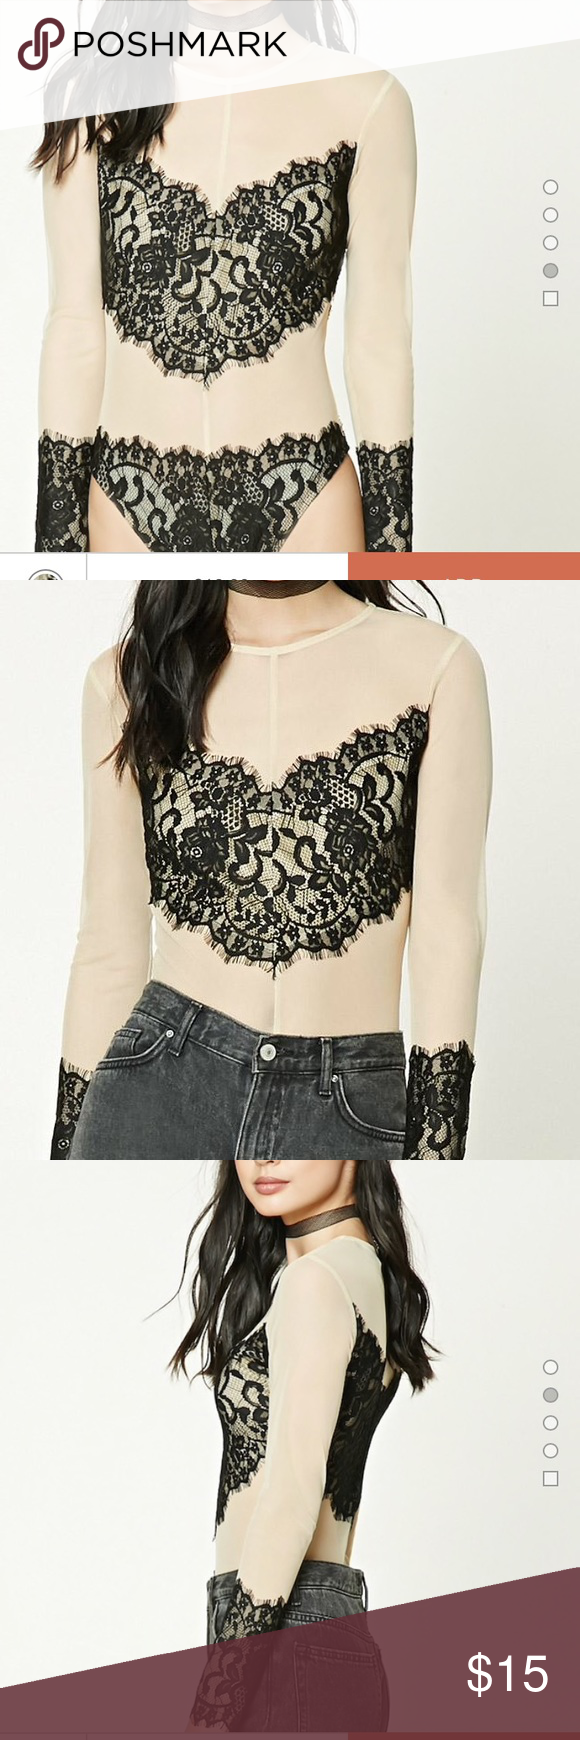 Forever 21 Sheer Eyelash Lace Bodysuit This bodysuit is simply stunning! I bought it for an event and ended up wearing something else, and I found it in my closet today! Sheer nude long sleeve bodysuit with black lace across the chest, bottom, and the sleeves are trimmed with it also! Zips up the back. NWT, I have never worn this! Great deal!  Forever 21 Tops